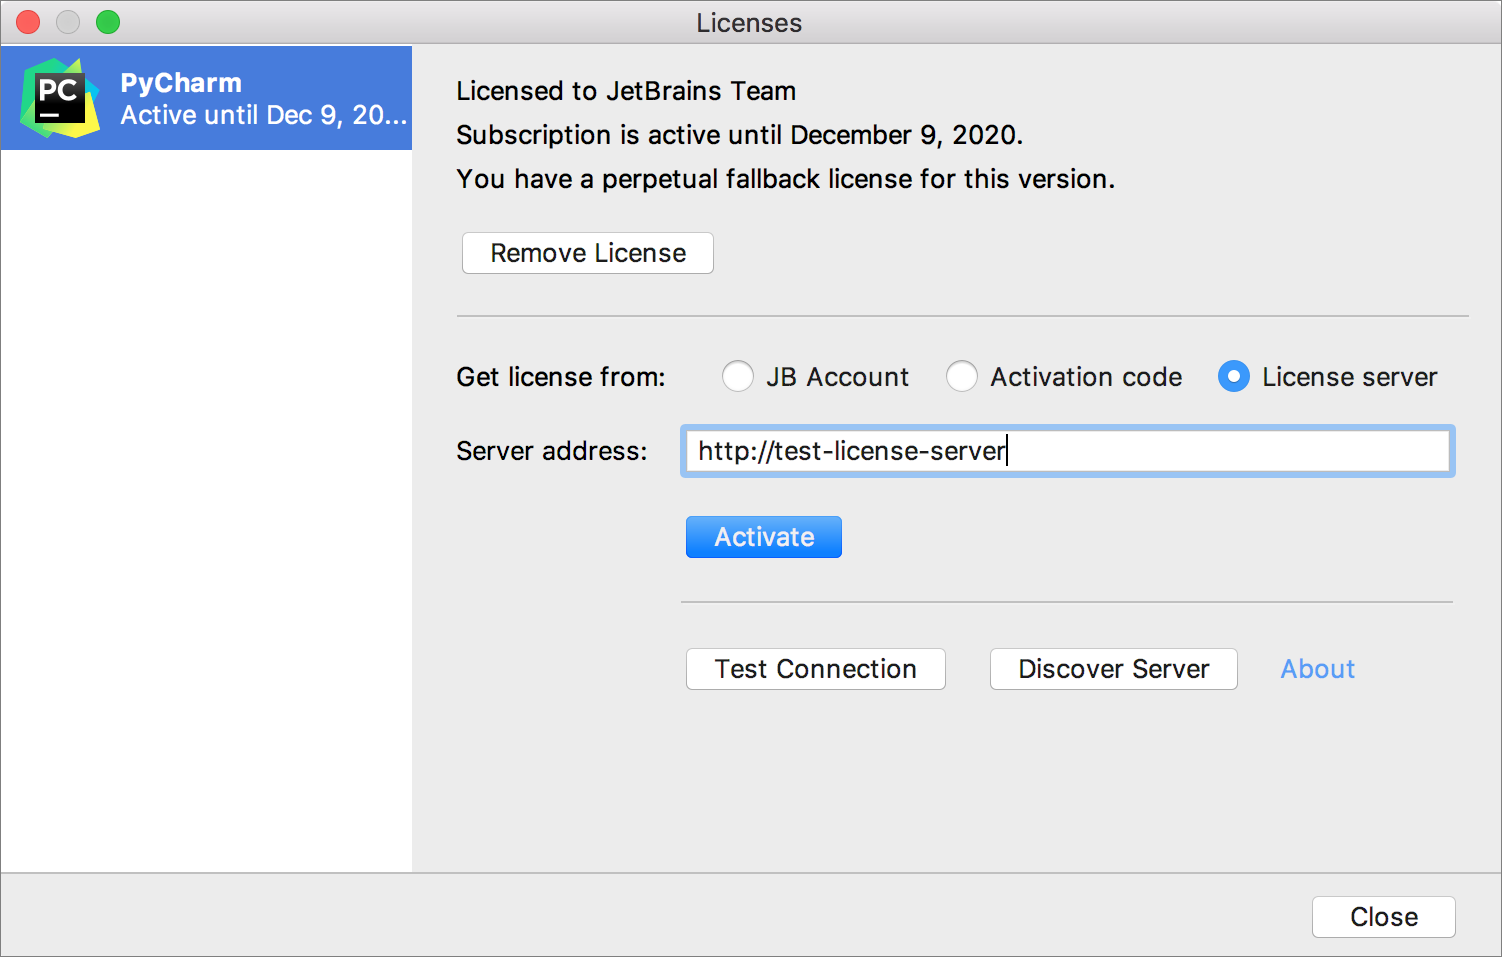 The License Activation dialog